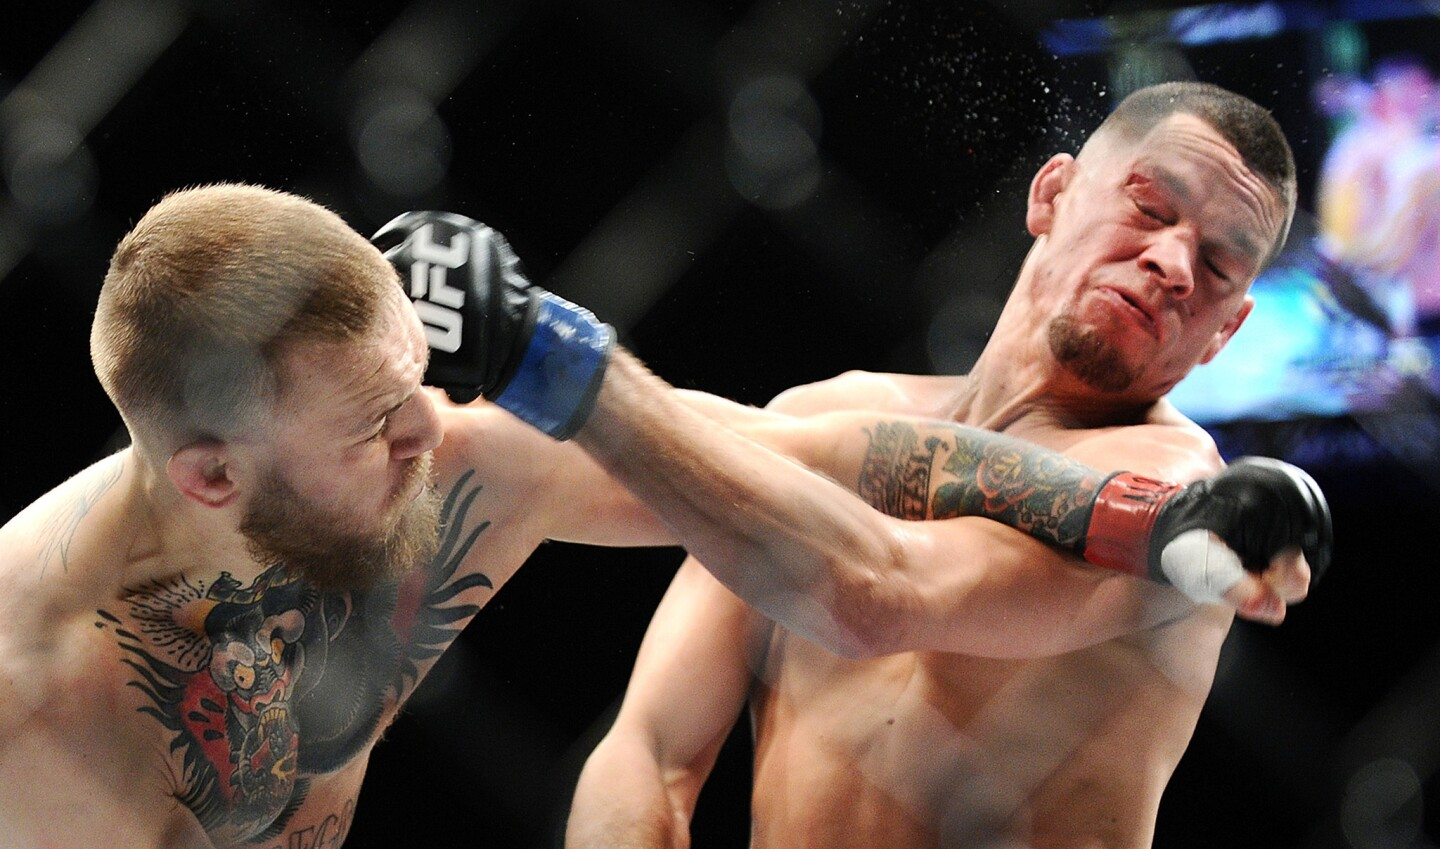 Conor McGregor, left, and Nate Diaz exchange punches during their welterweight fight at UFC 196 on March 5.